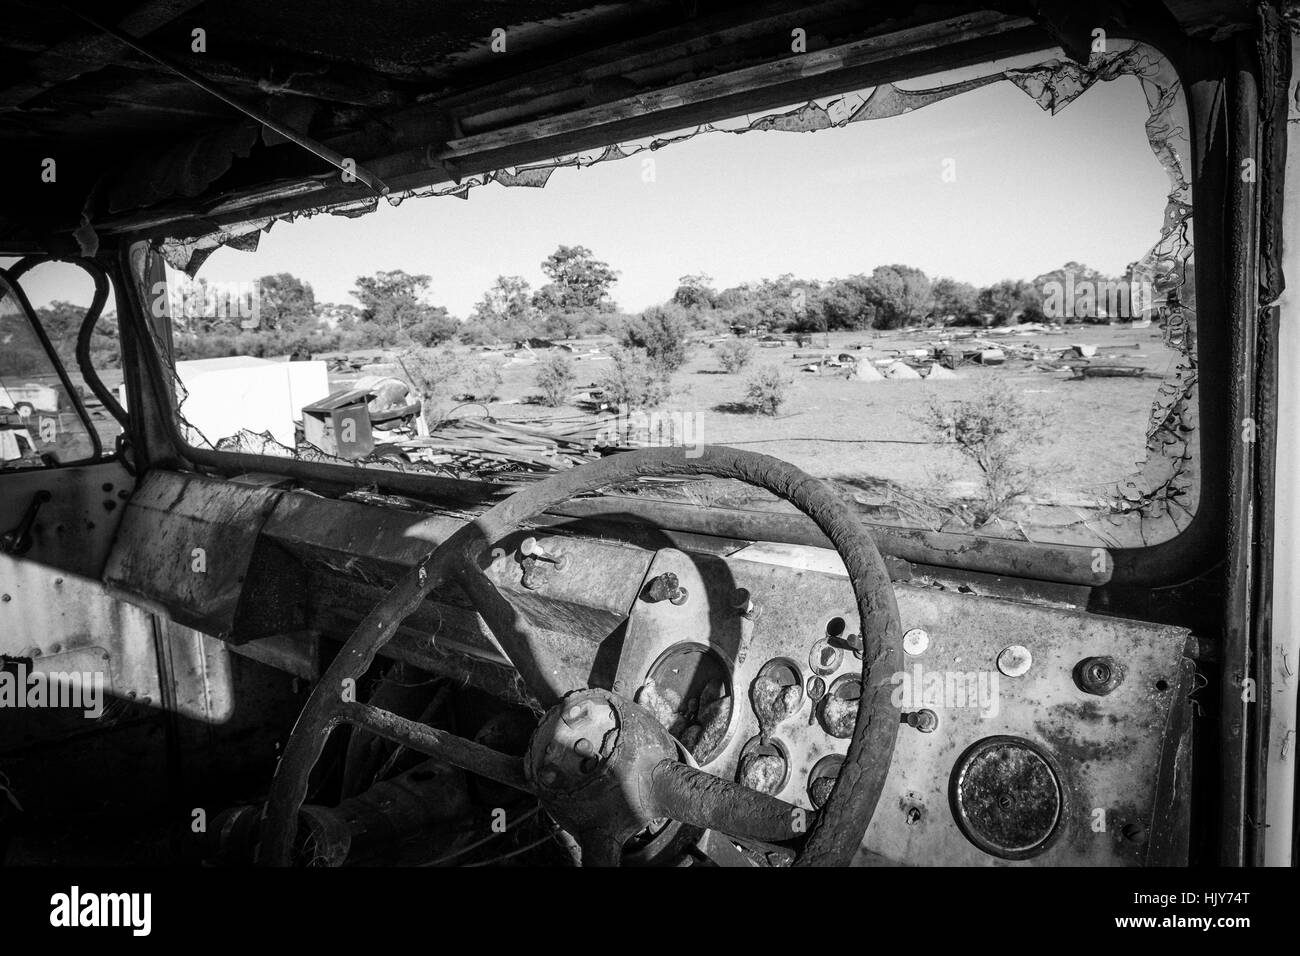 View through the windscreen of an abandoned truck onto a desert wasteland in outback New South Wales, Australia - Stock Image